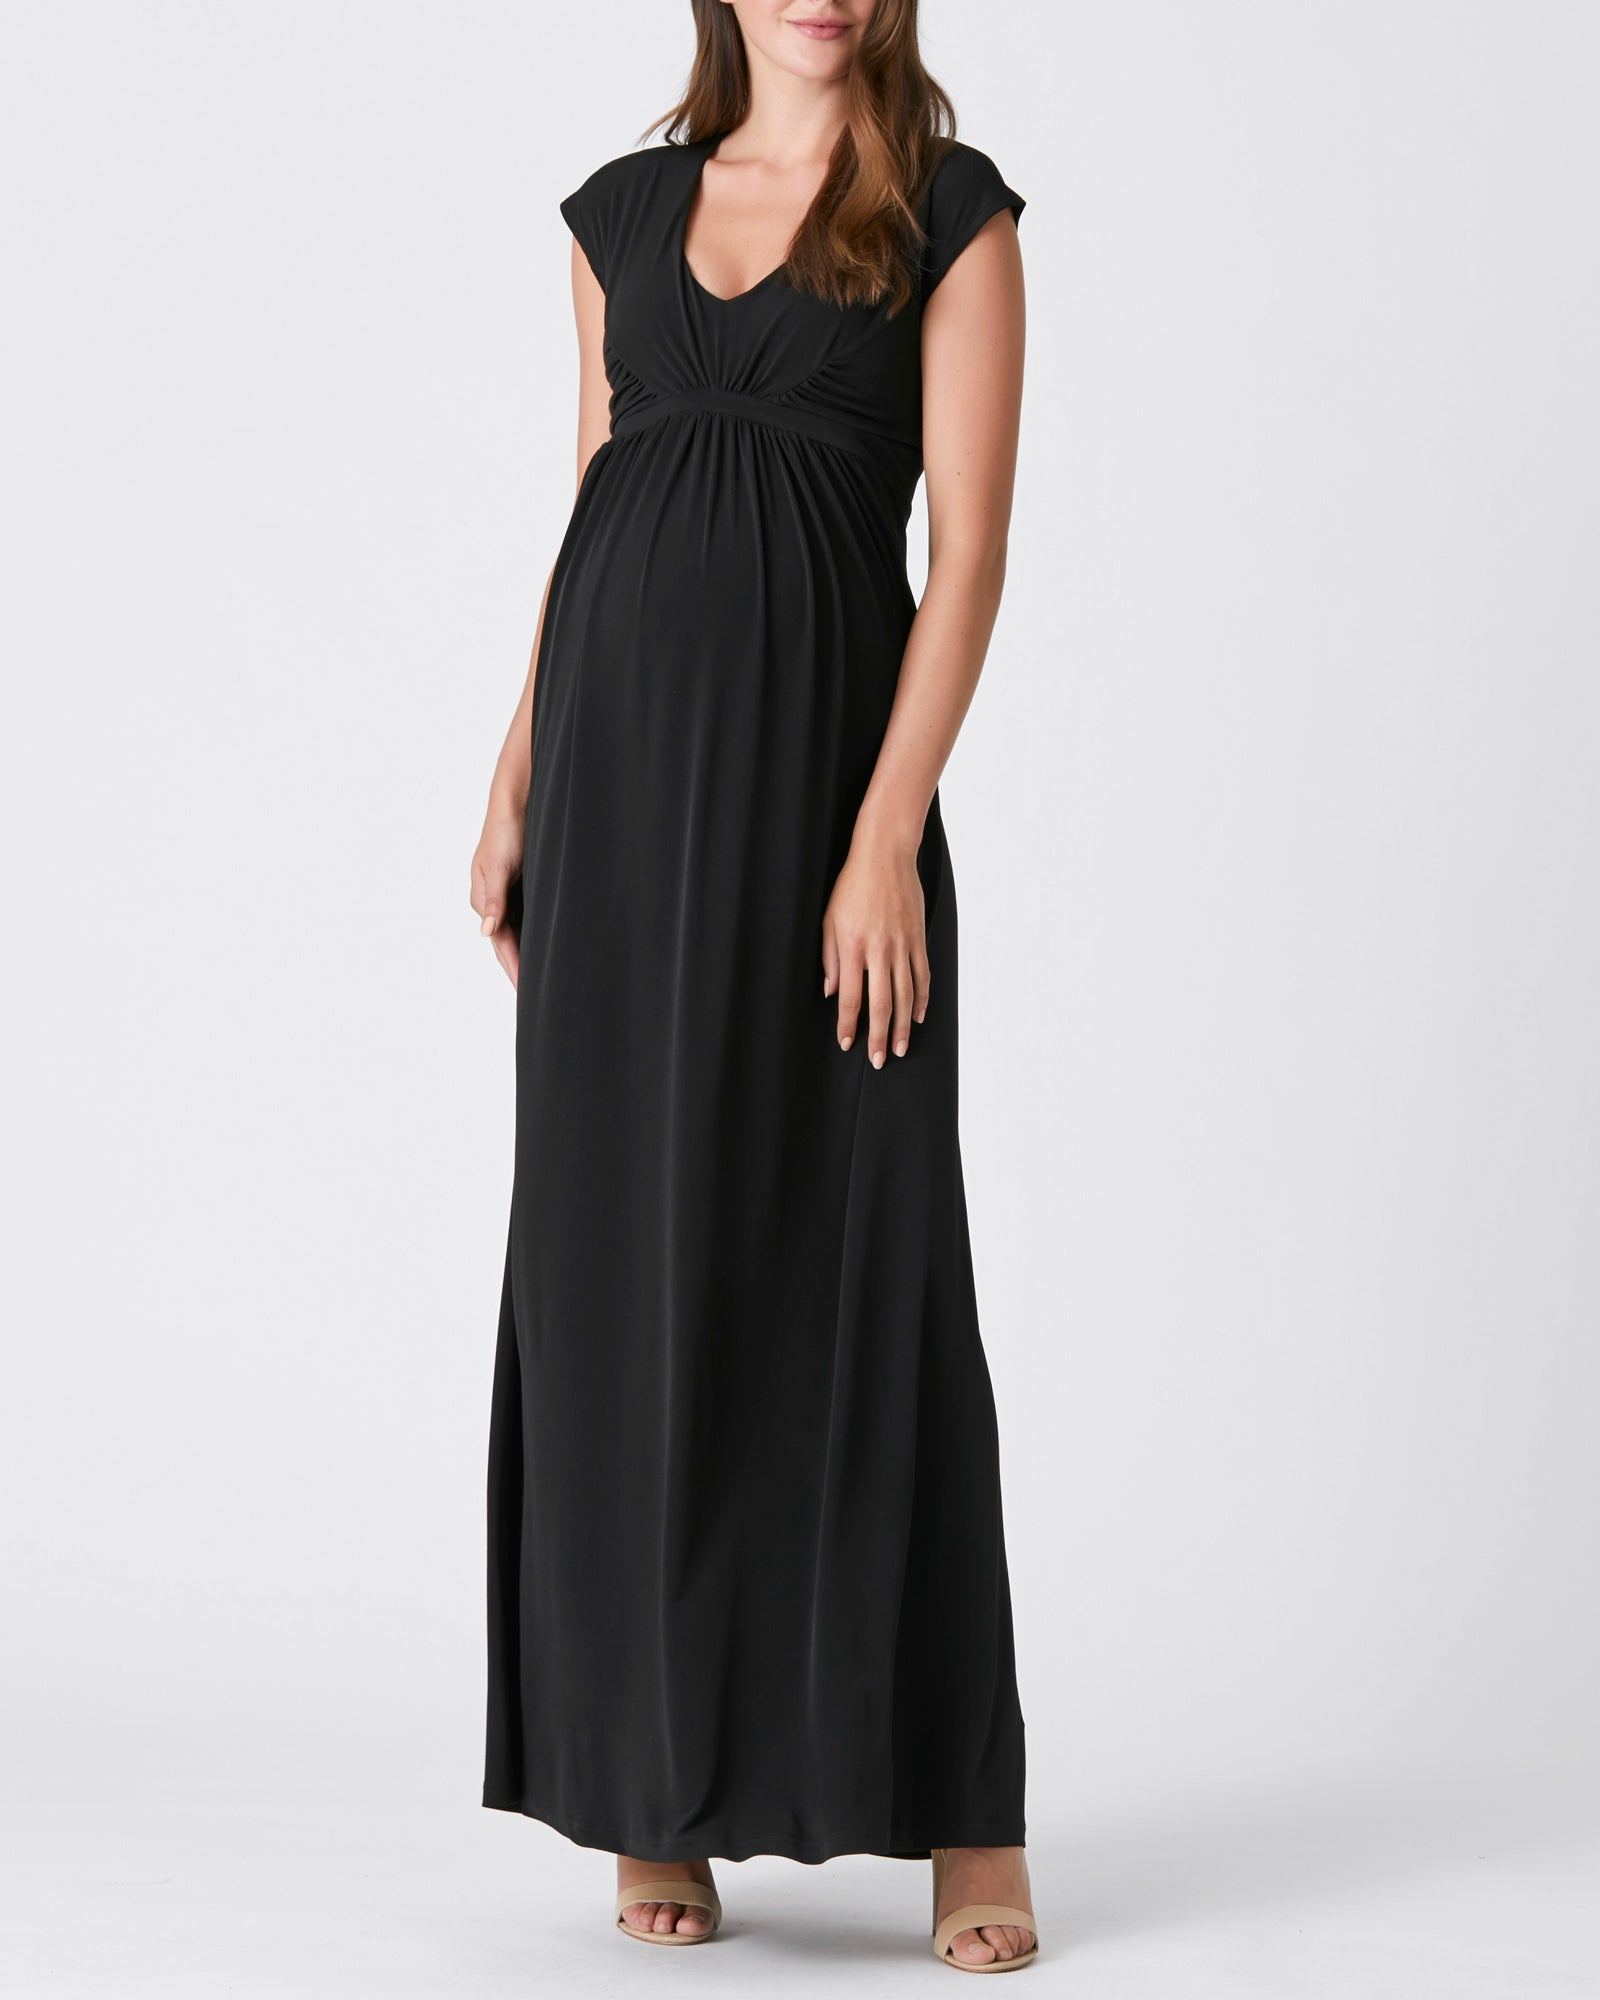 Kyla Gather Maxi (outlet)